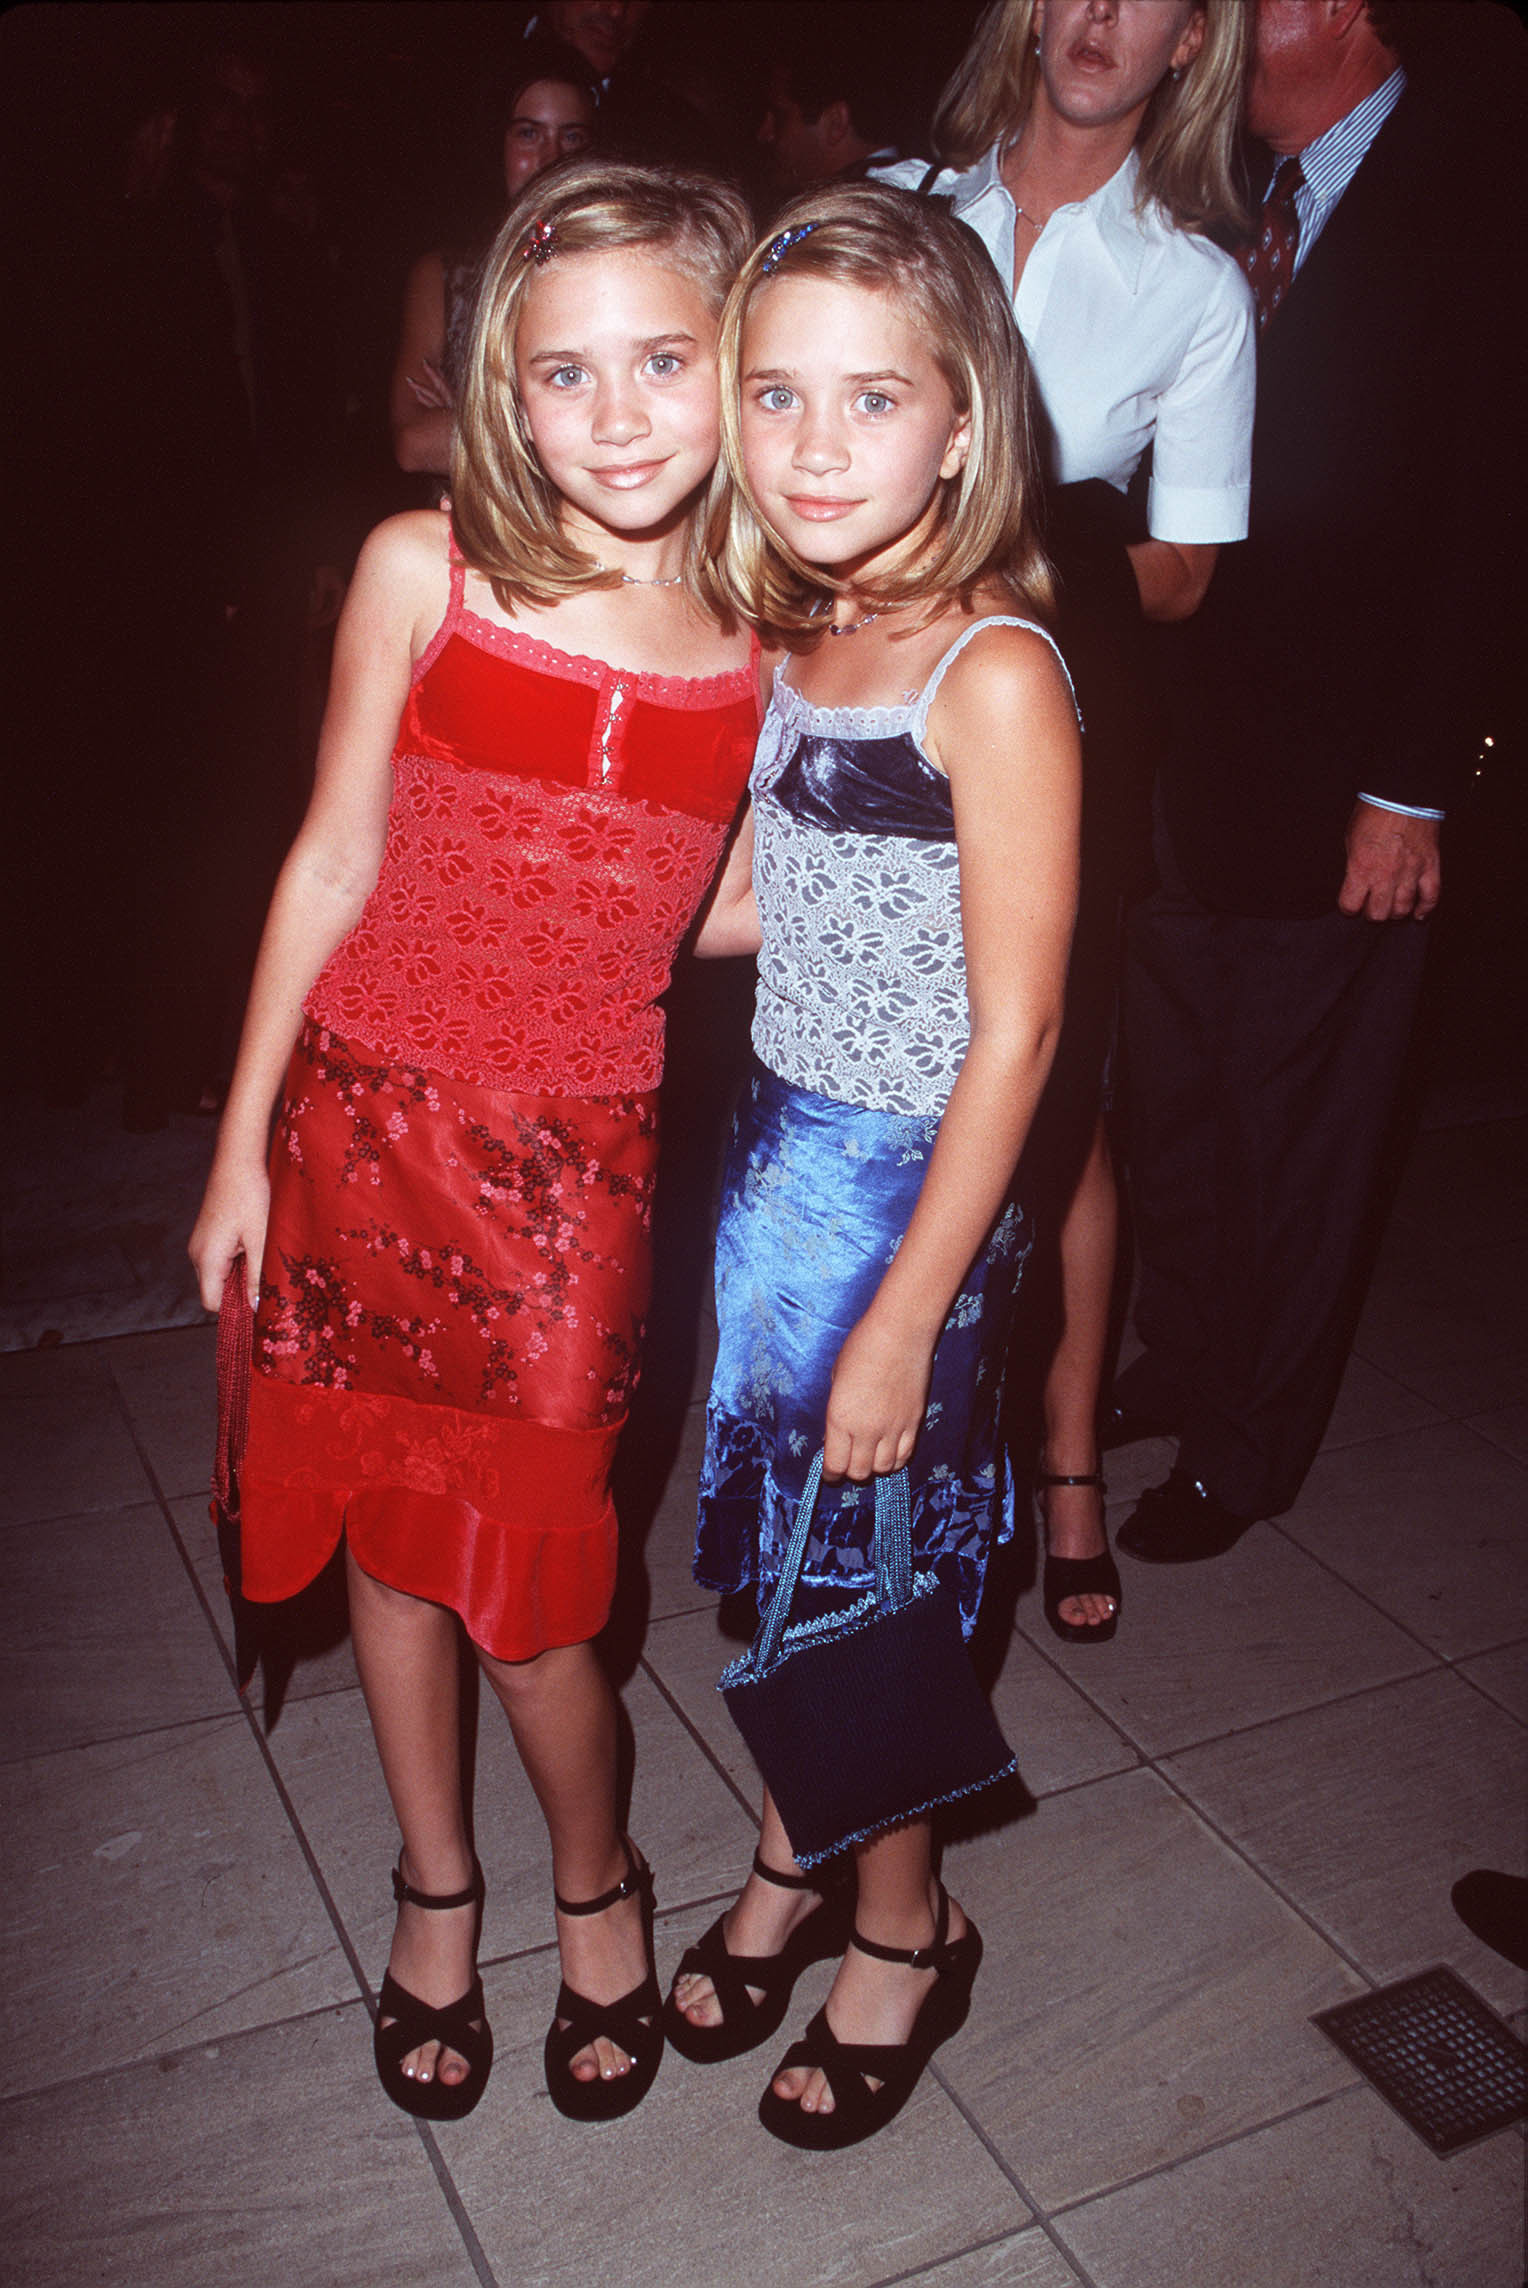 in 1998 Mary-kate Olsen And